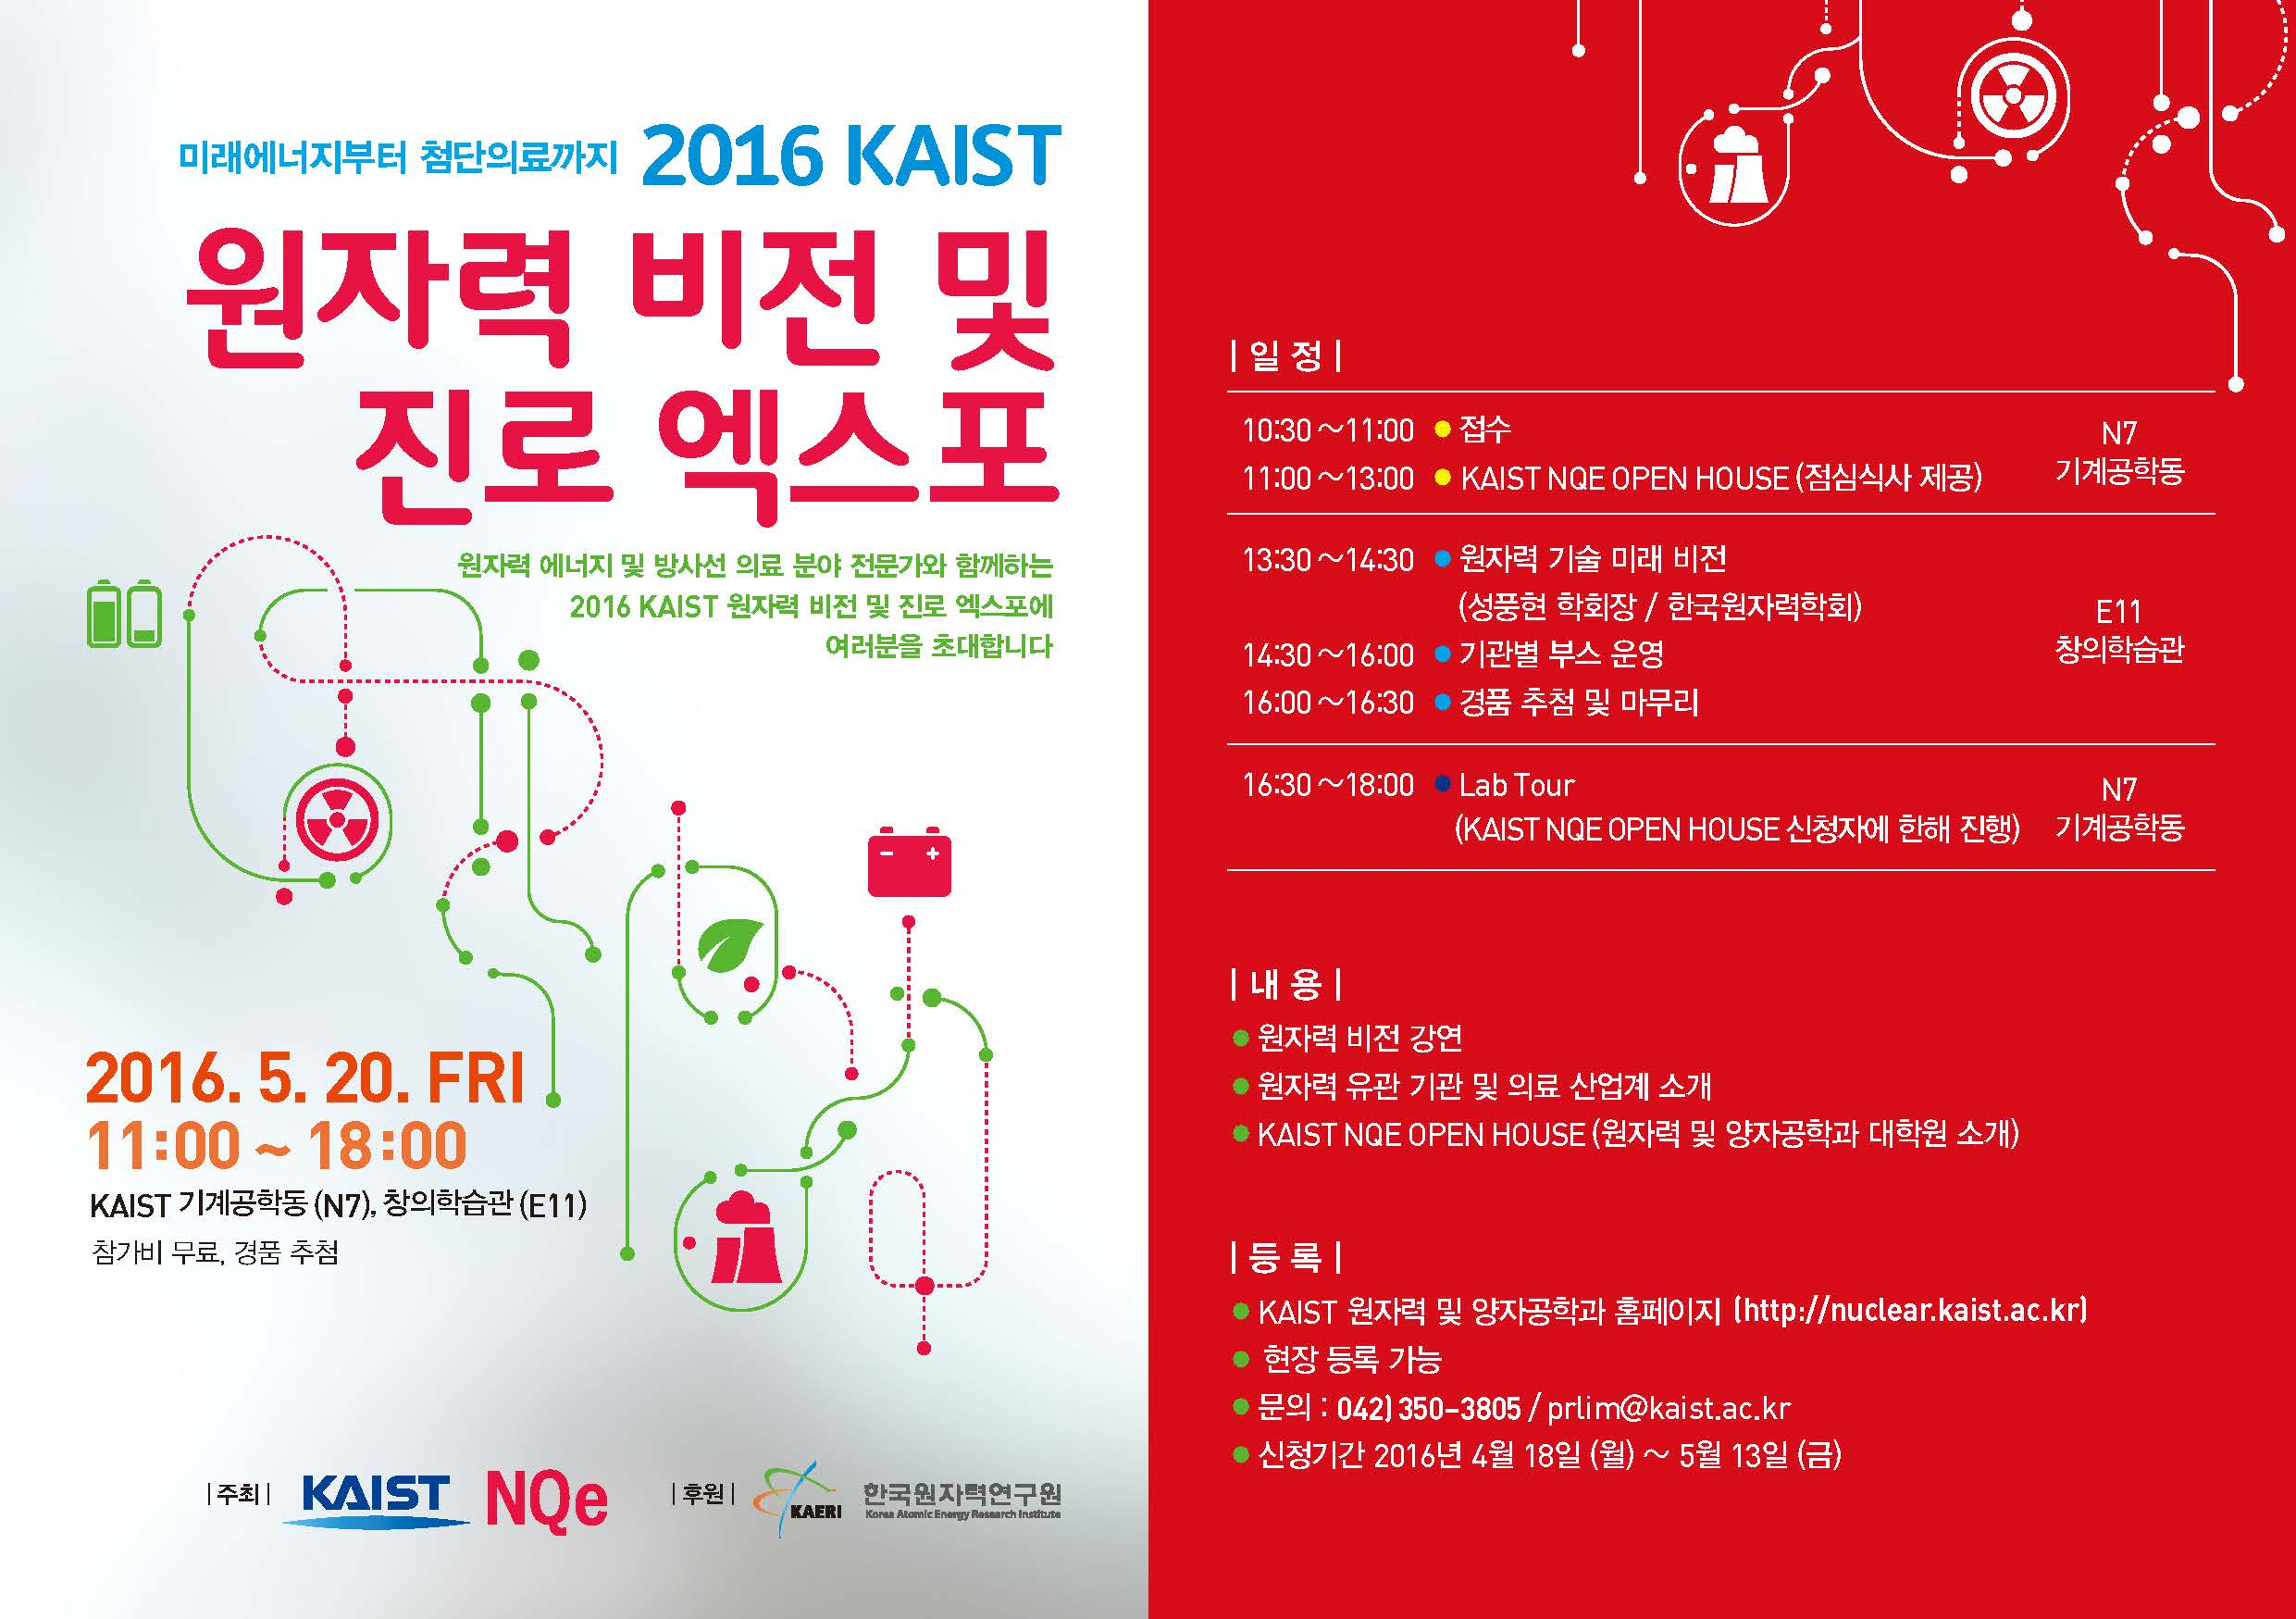 KAIST NUCLEAR VISION AND CAREER EXPO 2016 (Leaflet).jpg